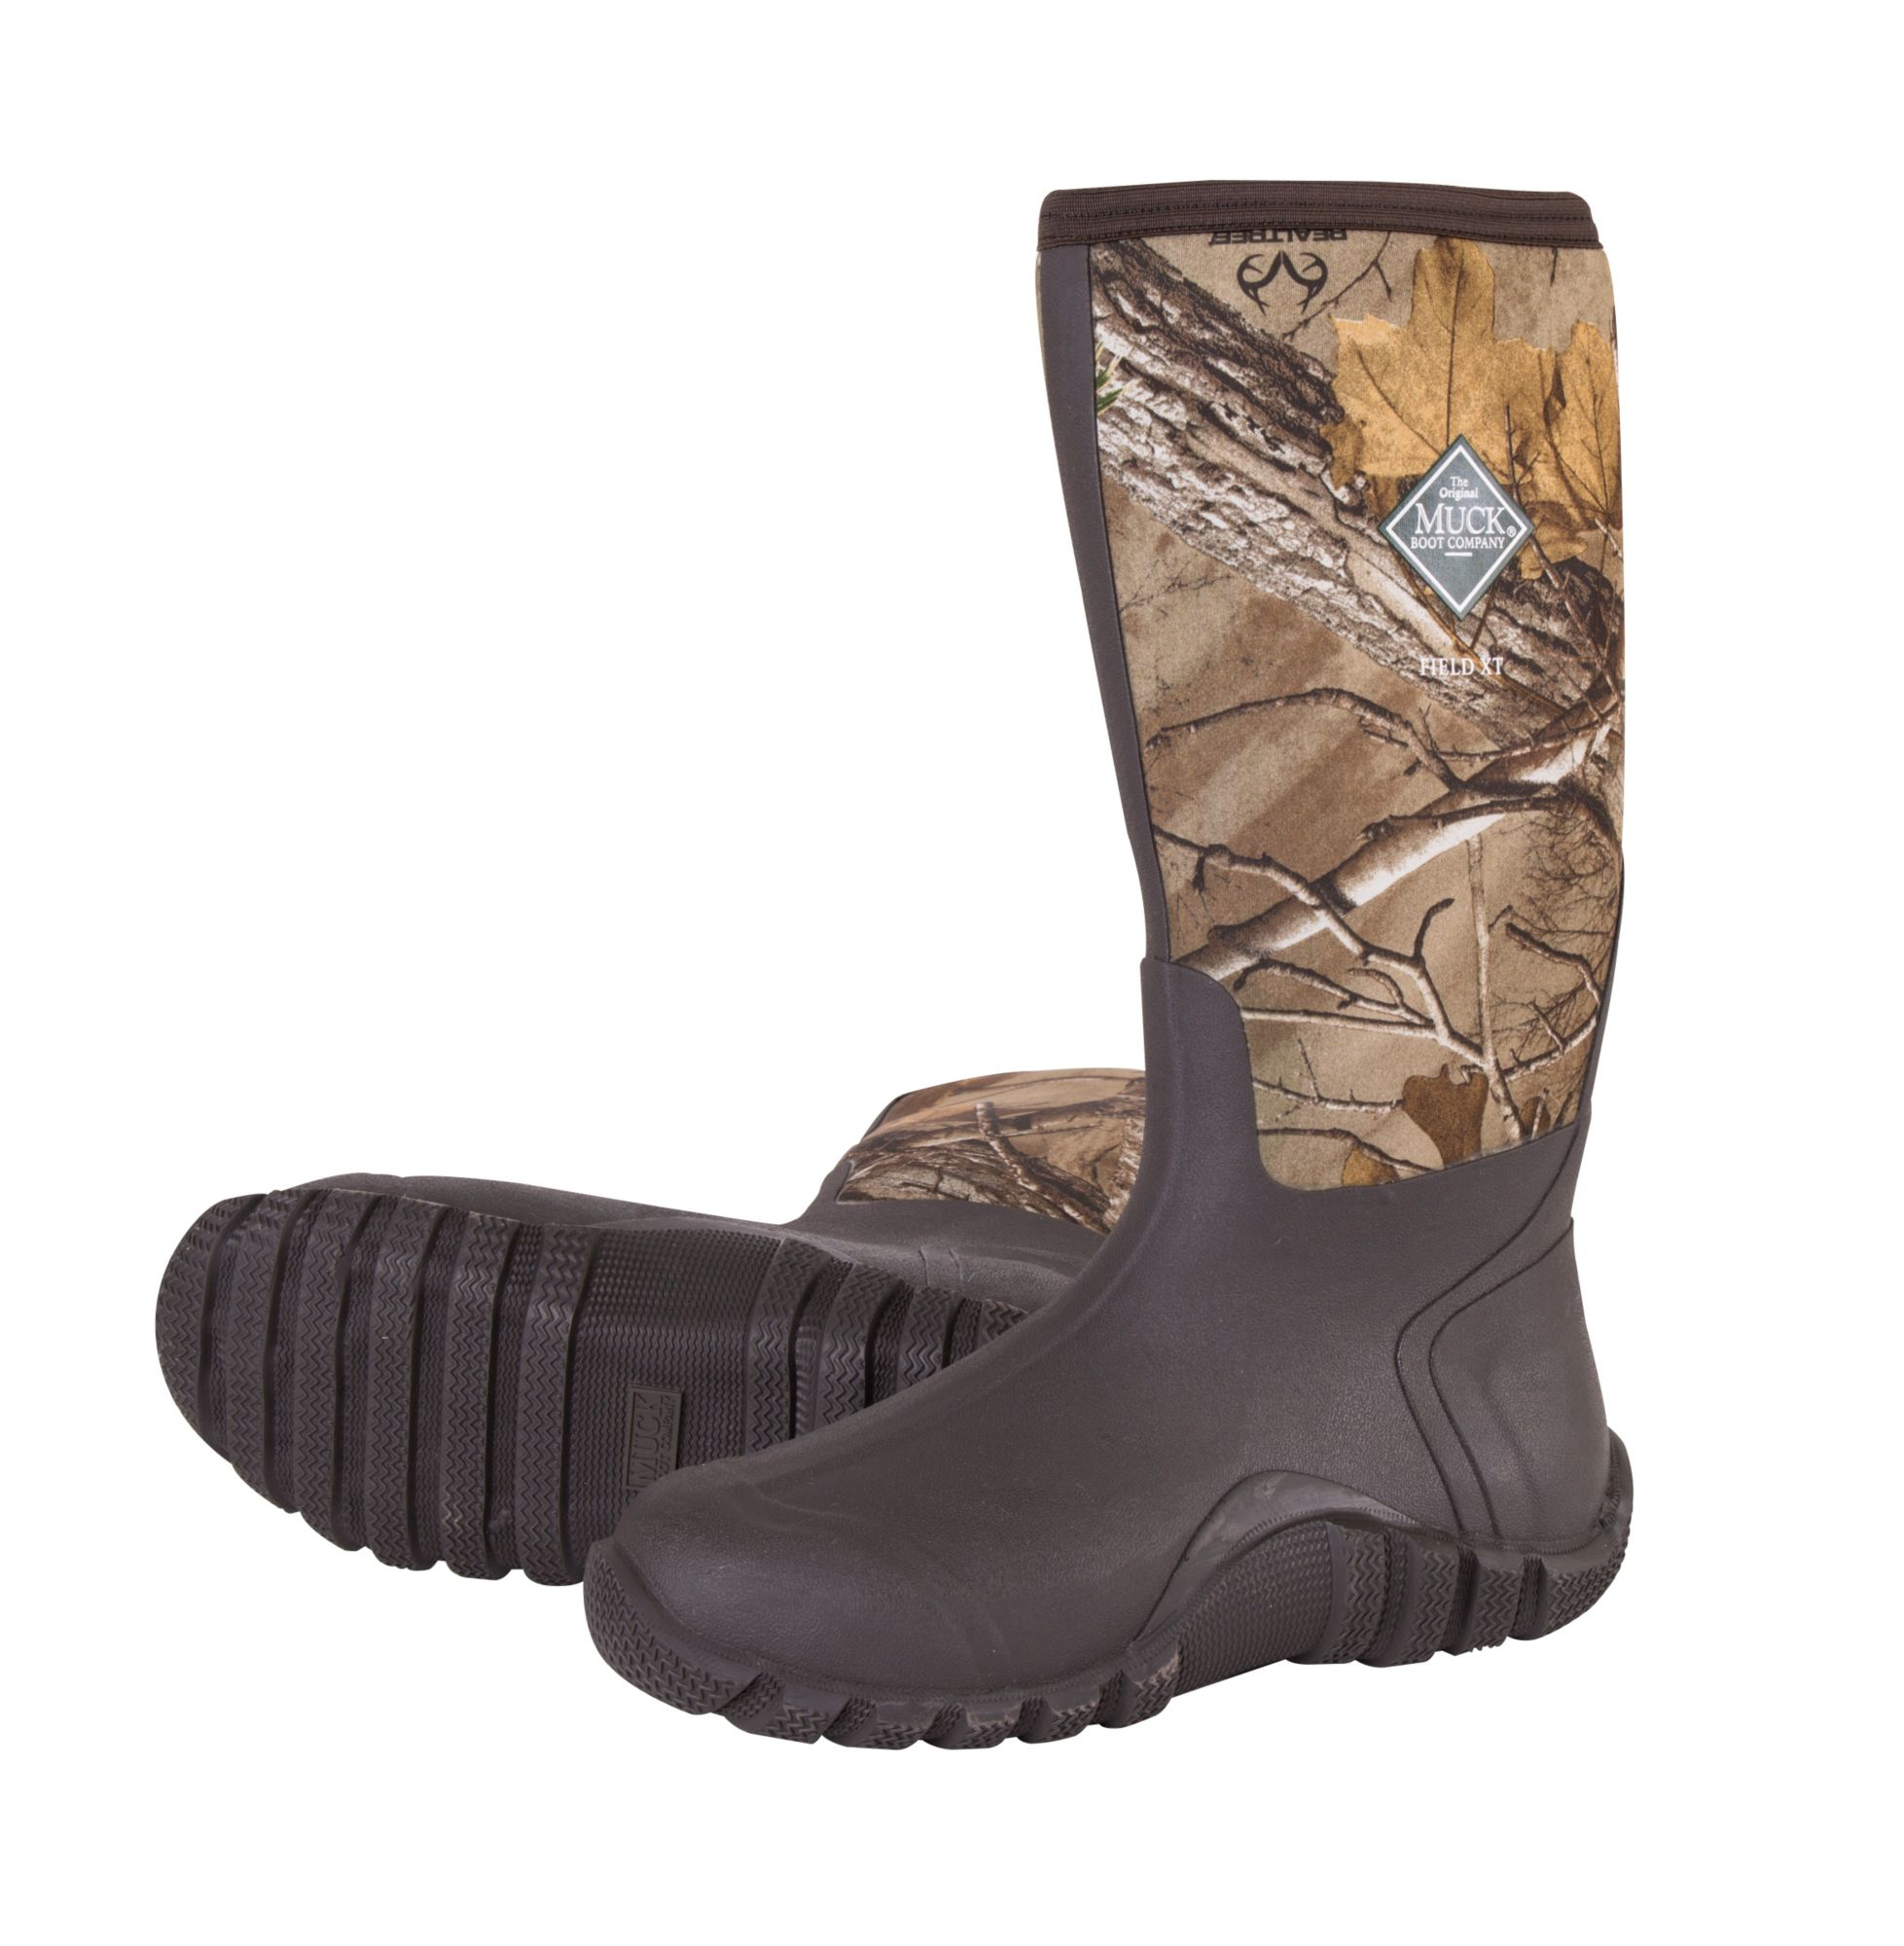 Mens Muck Boots uNIvqY4M